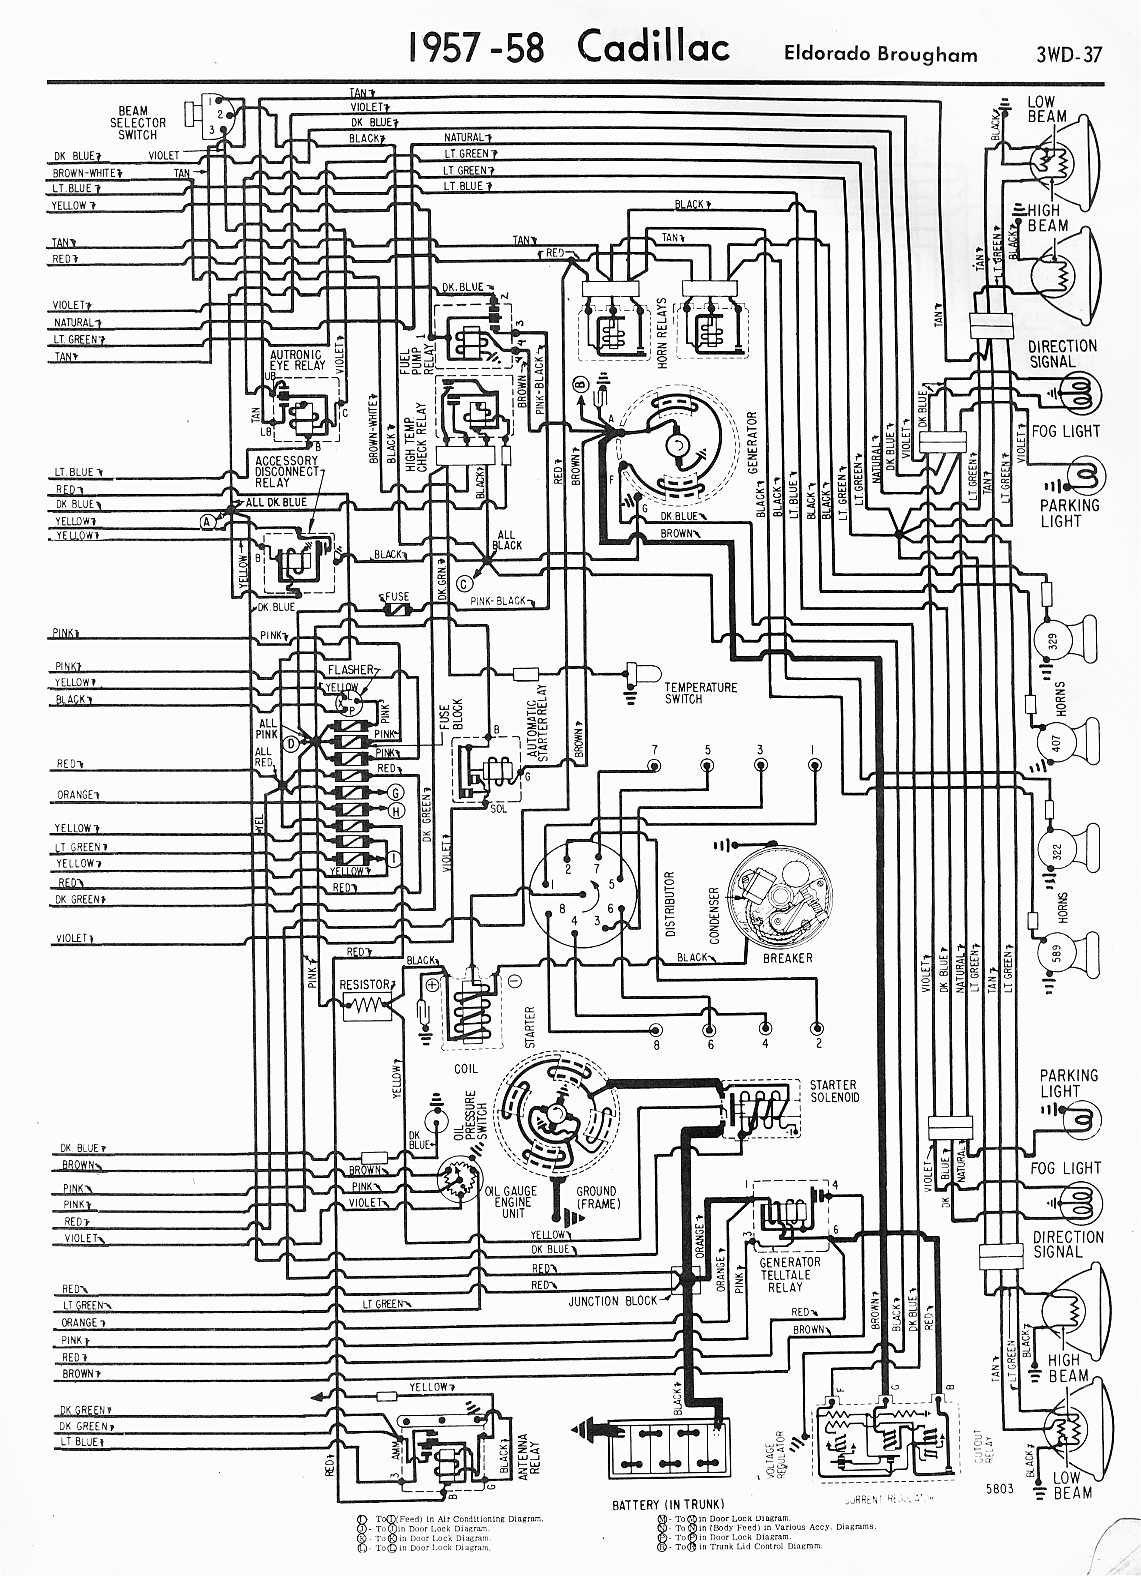 Strange Wiring Diagram For 1992 Cadillac Fleetwood Wiring Diagram Tutorial Wiring Cloud Onicaxeromohammedshrineorg